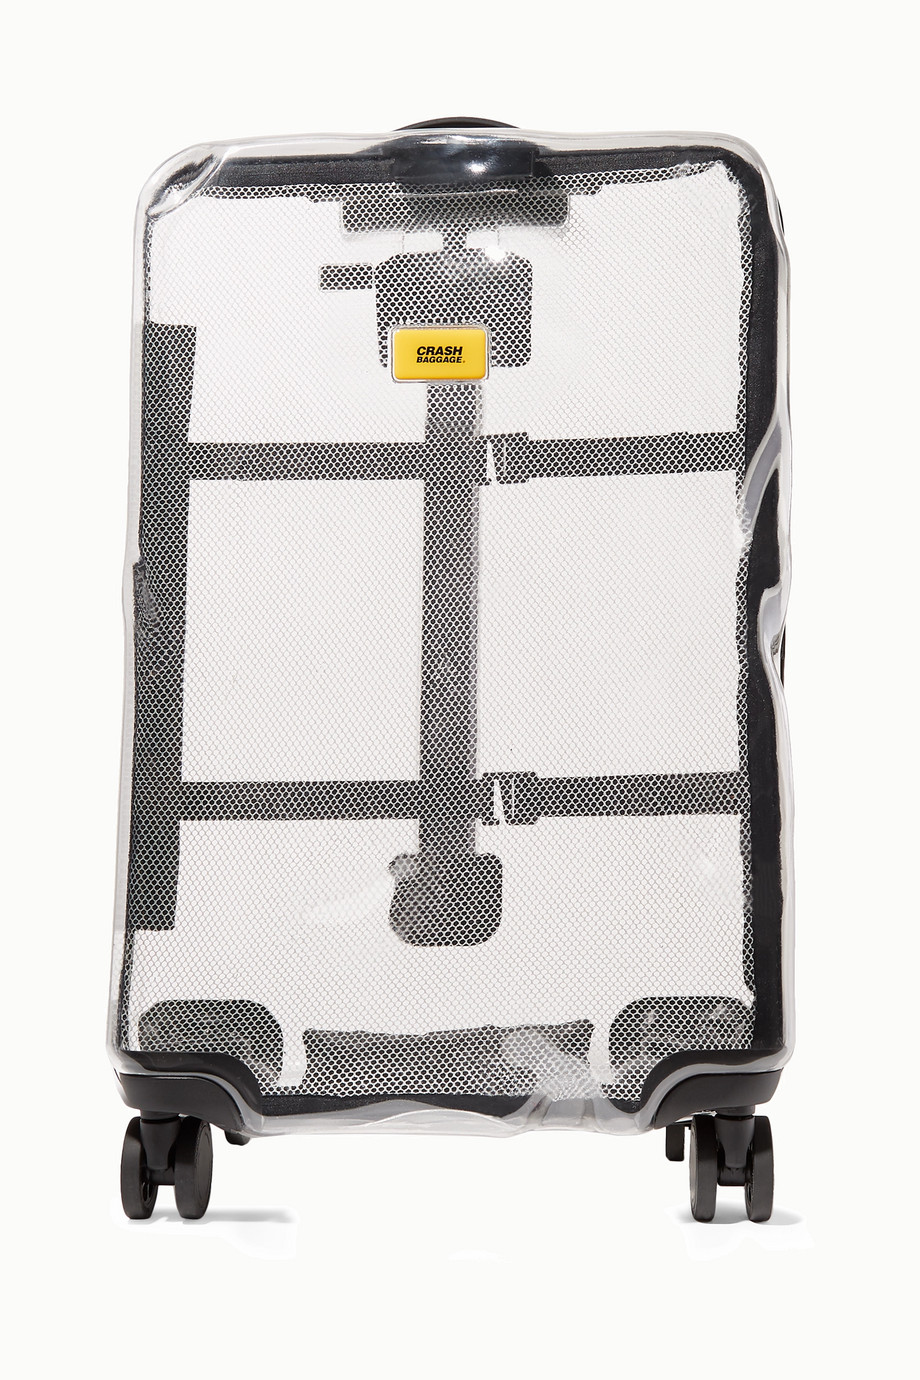 Crash Baggage Share Medium hardshell suitcase